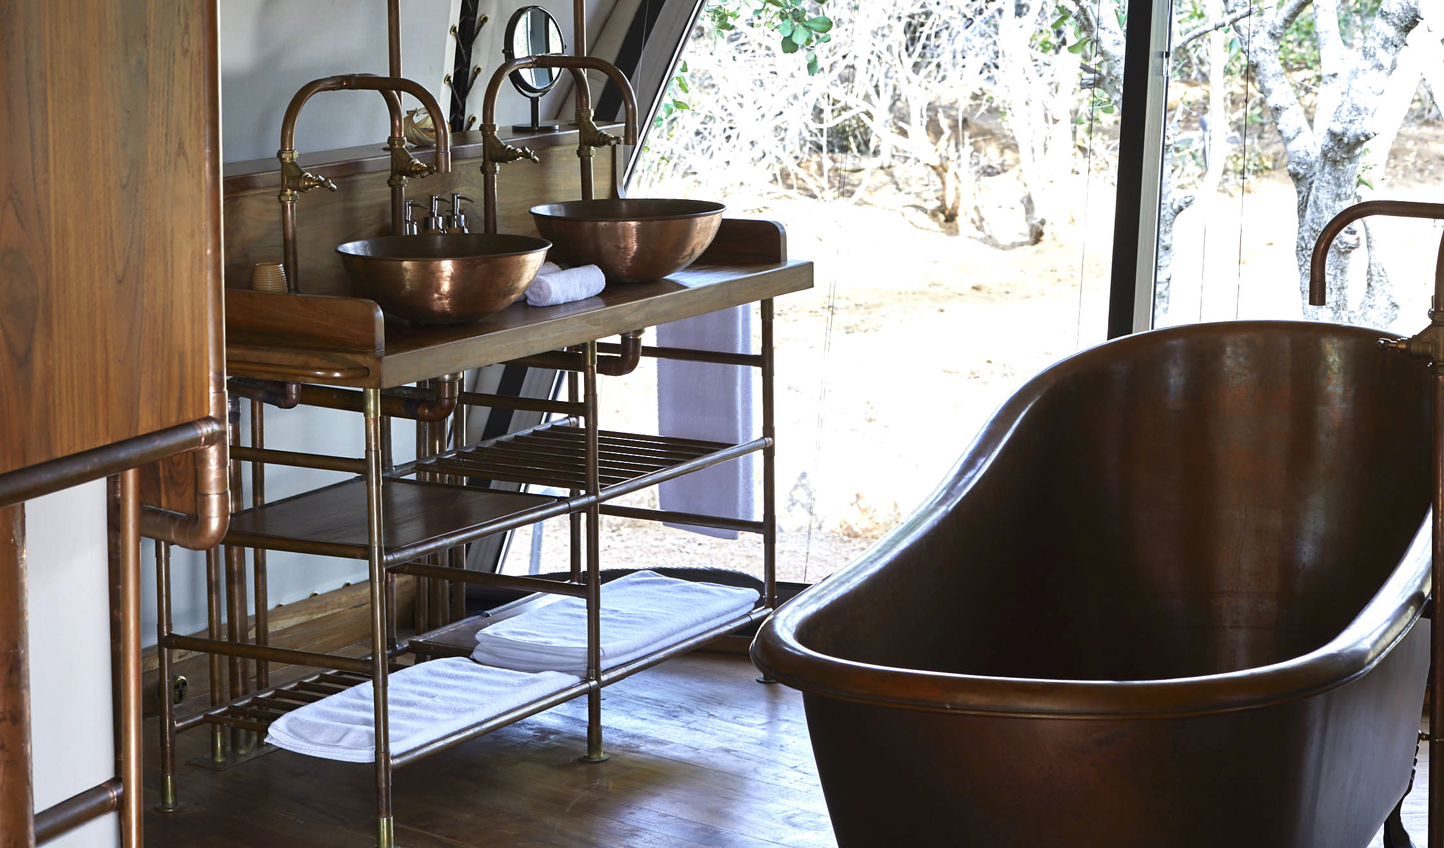 Copper tubs revive a sense of colonial splendour